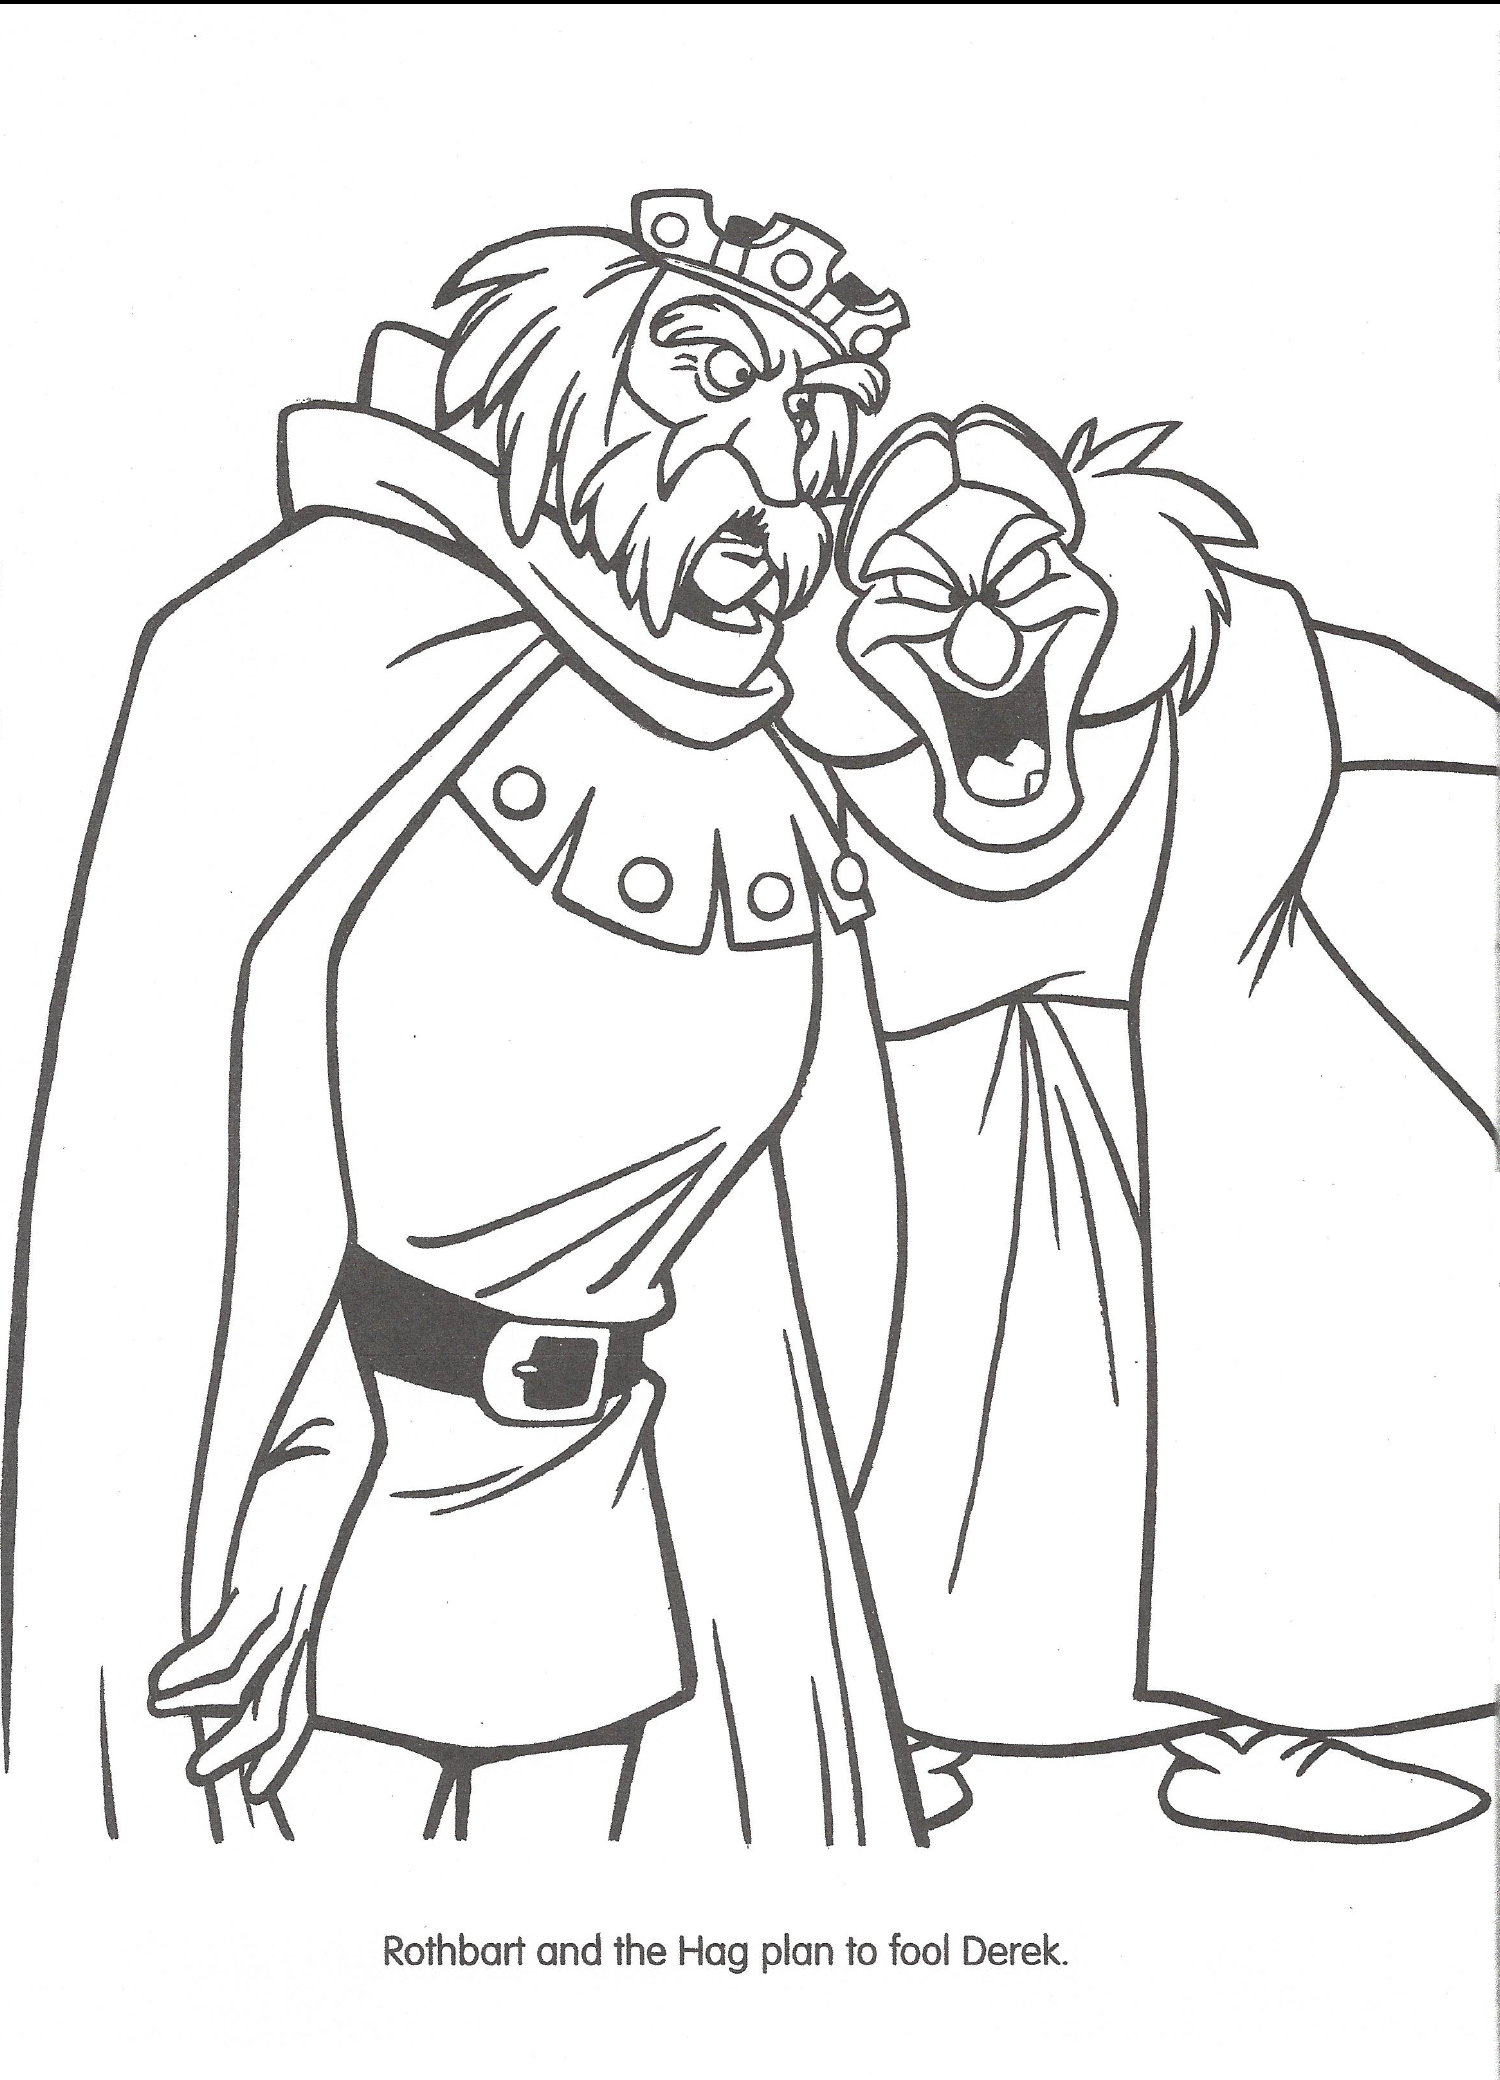 odette and derek coloring pages - photo#19